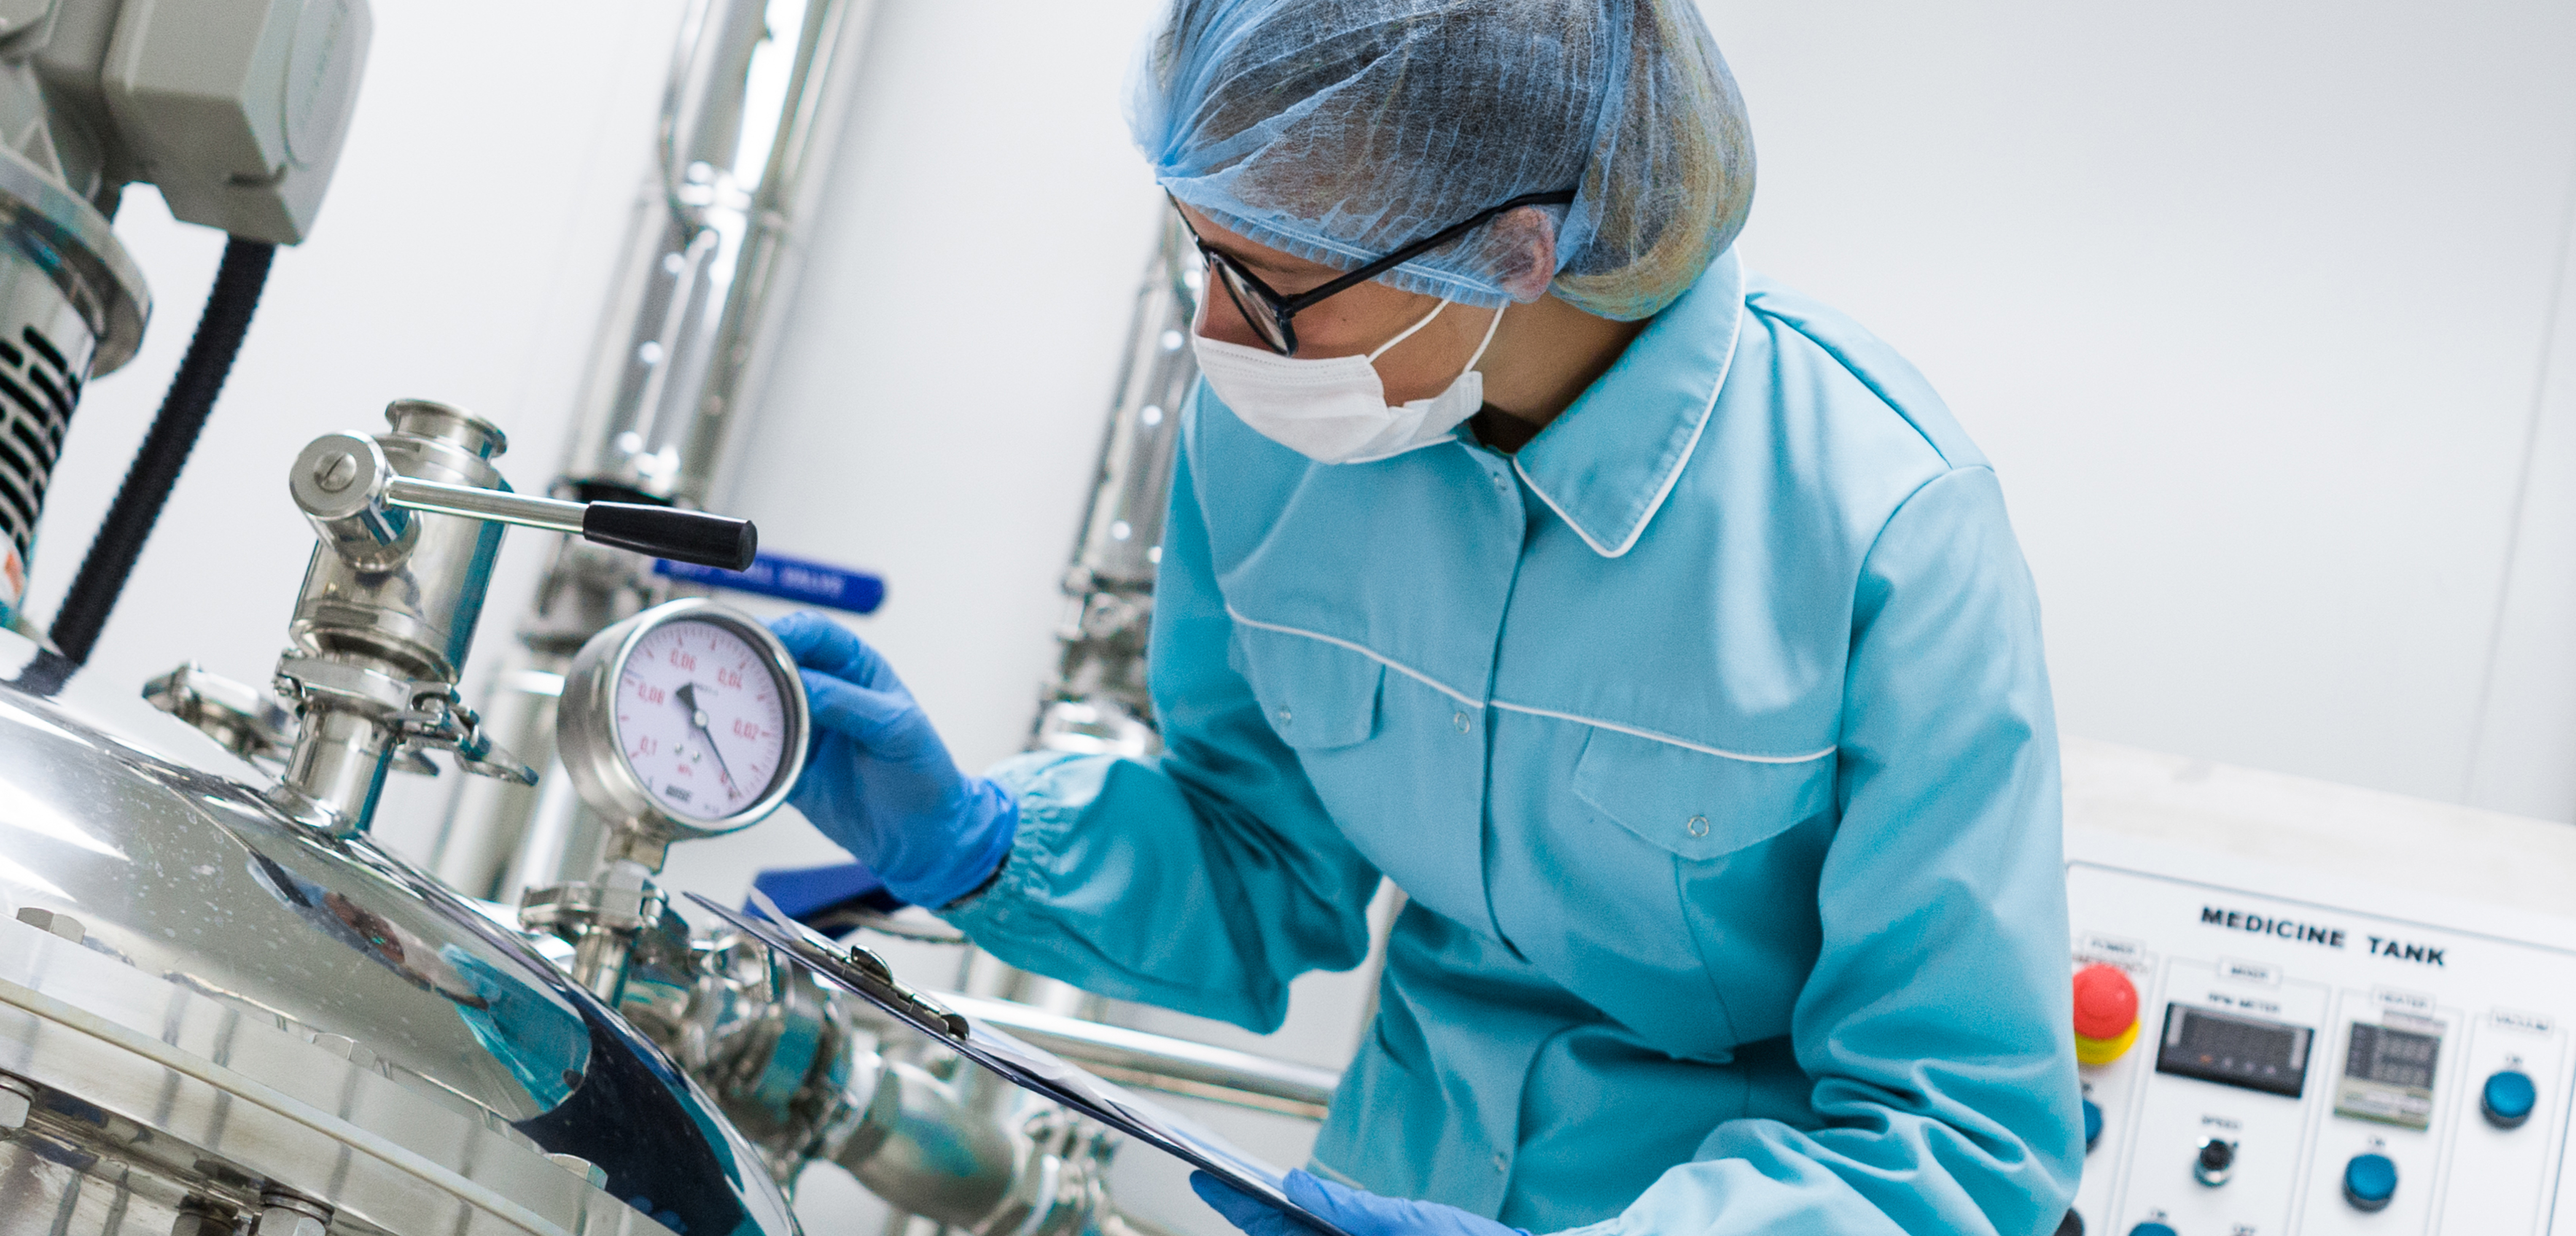 Pharmaceutical worker adjusting temperature controls in lab